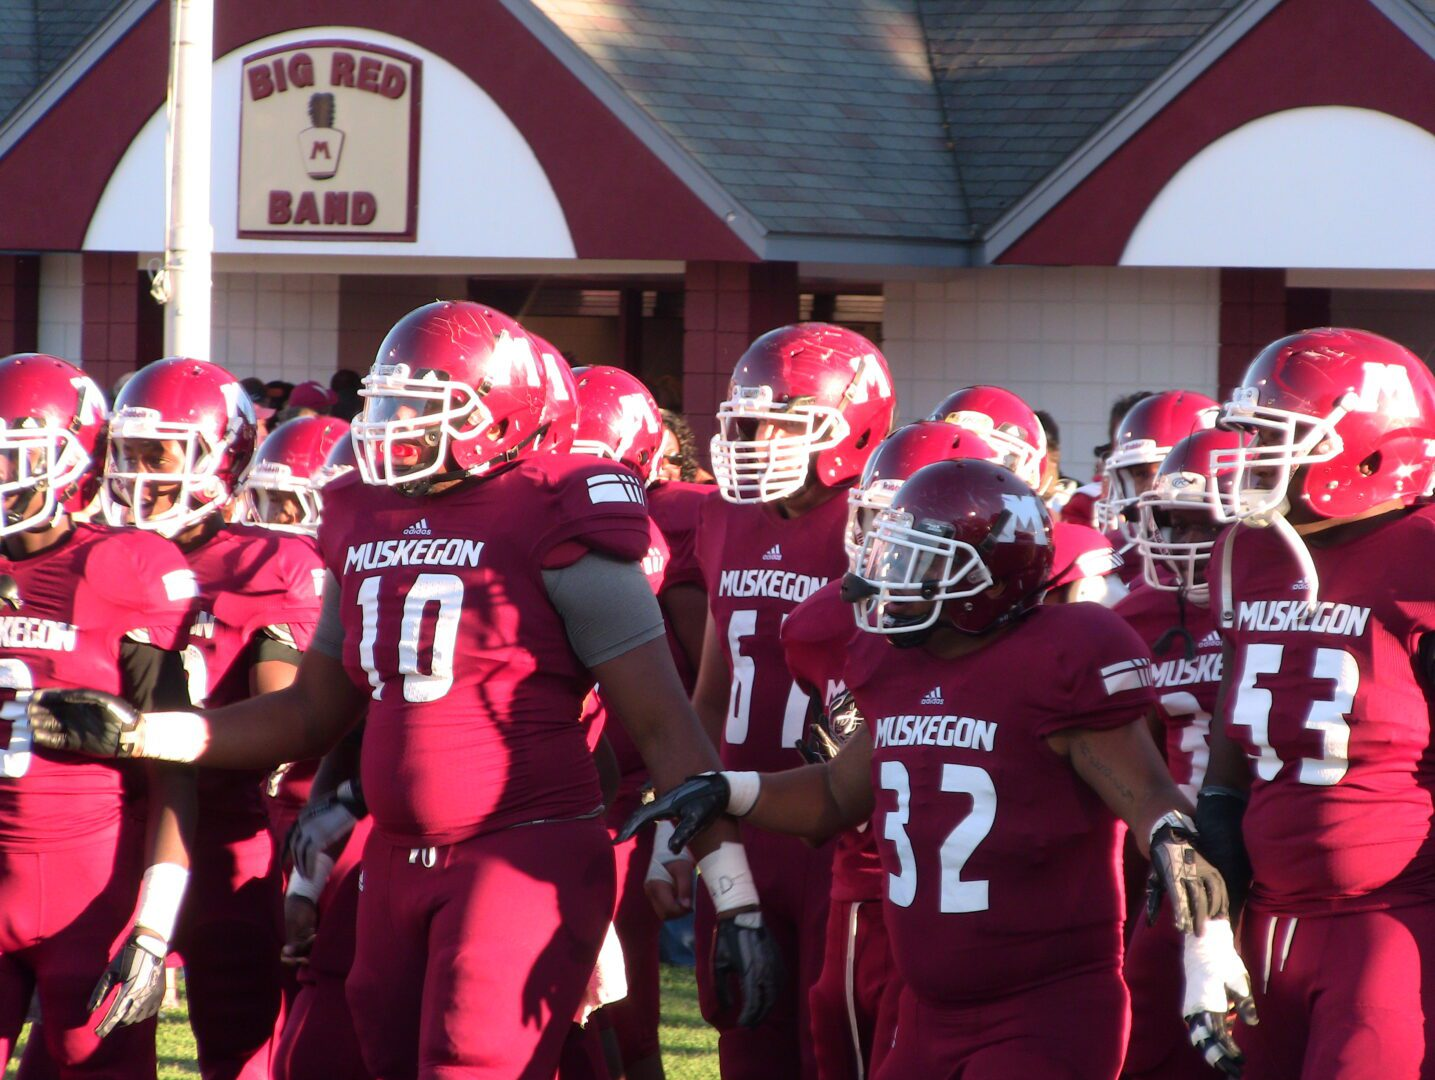 Highlights from Muskegon's stomping of Rockford [VIDEO]